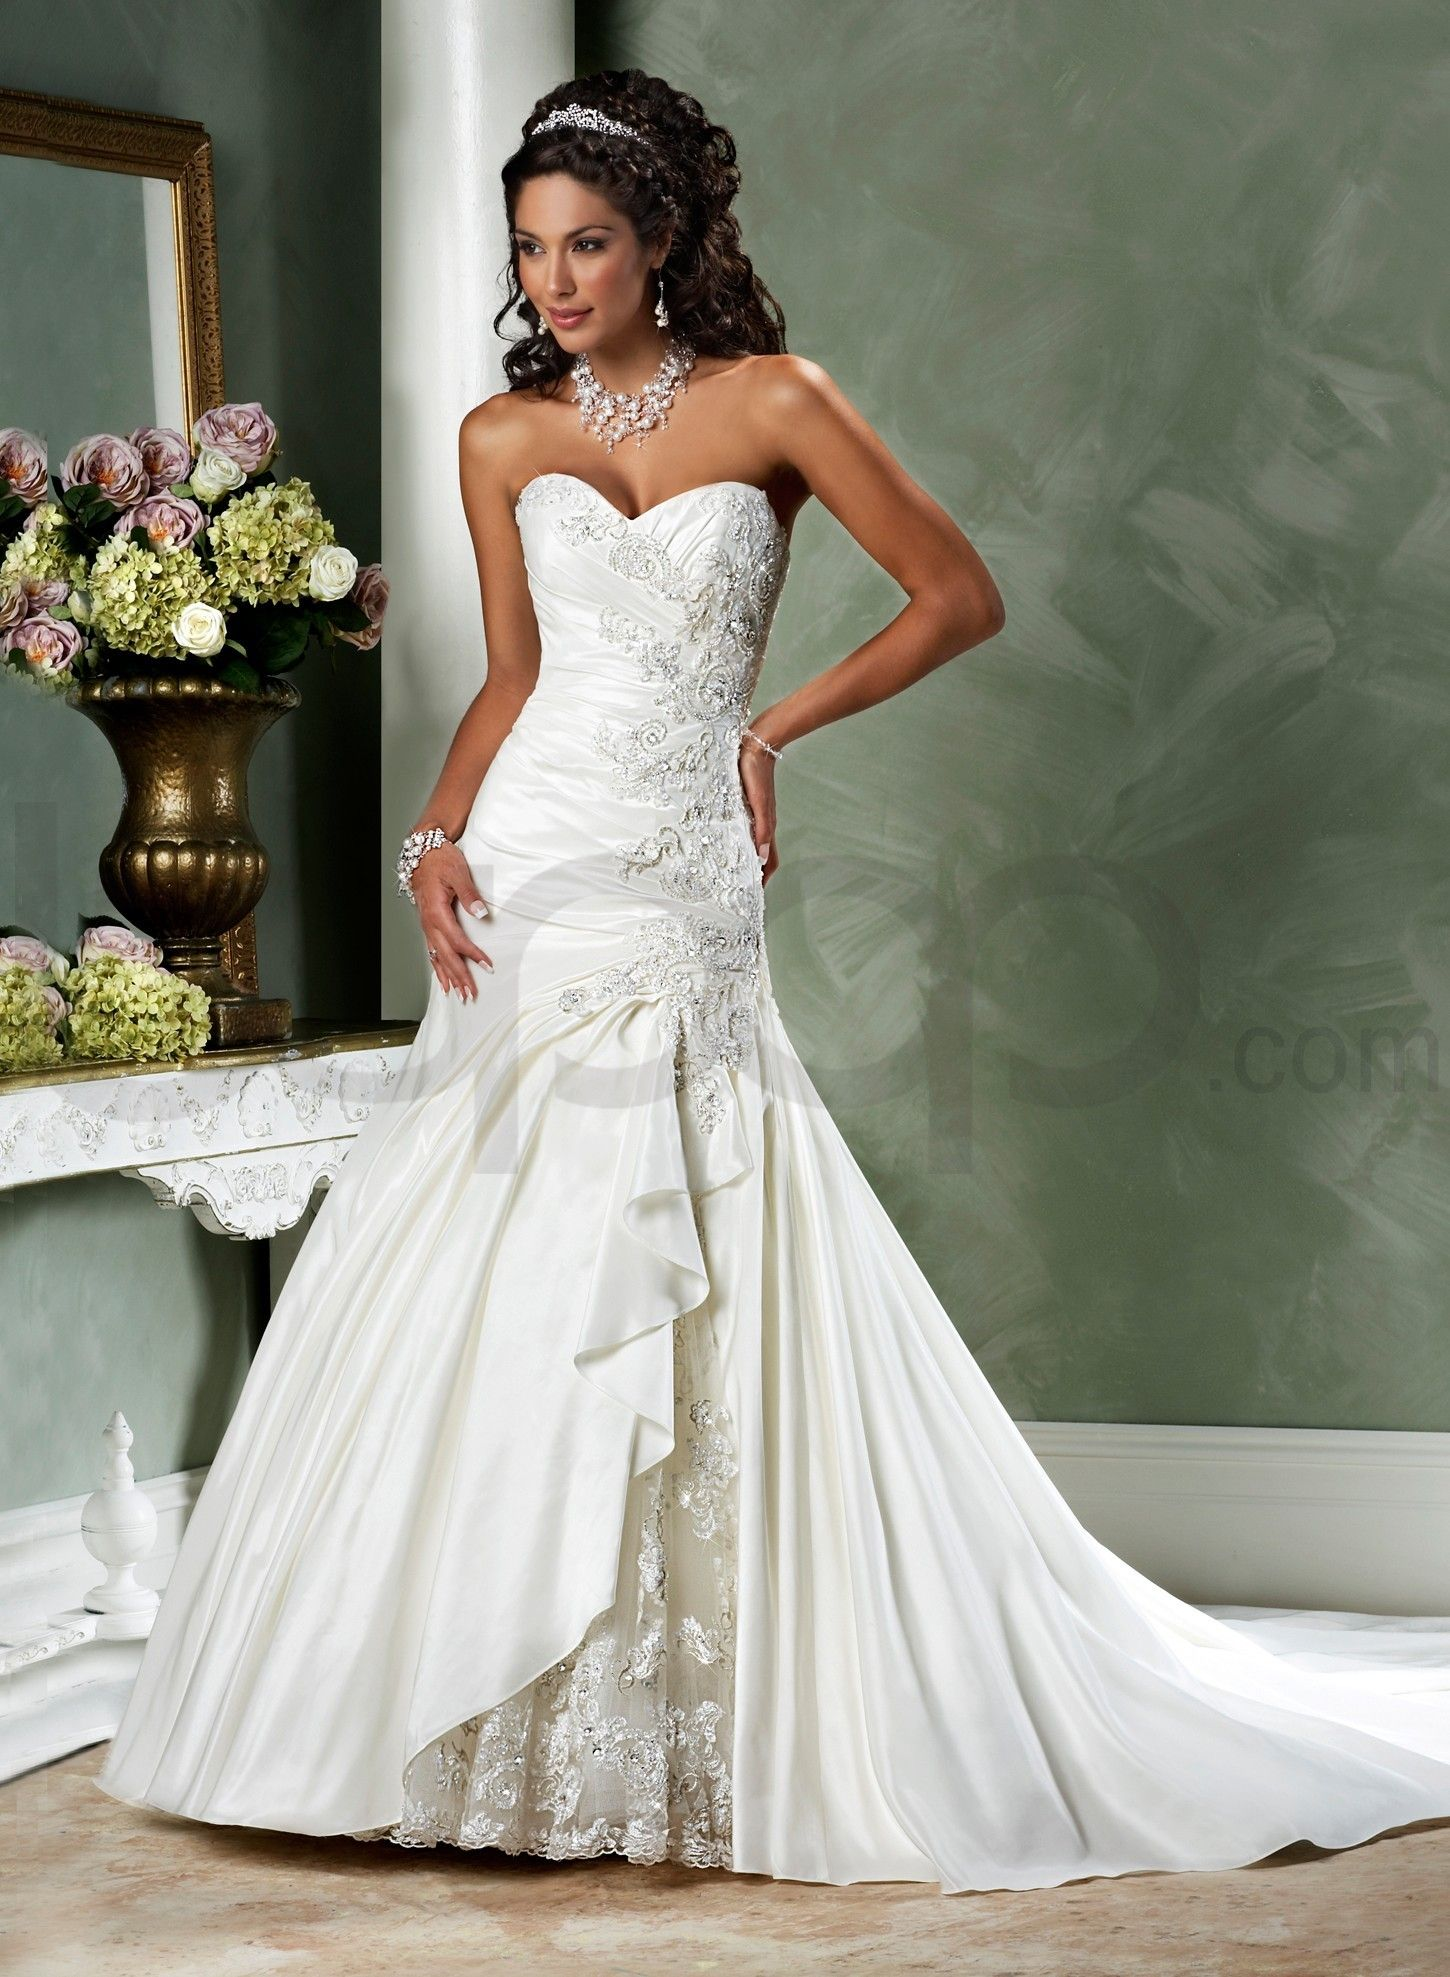 Strapless Wedding Dresses With Sweetheart Neckline